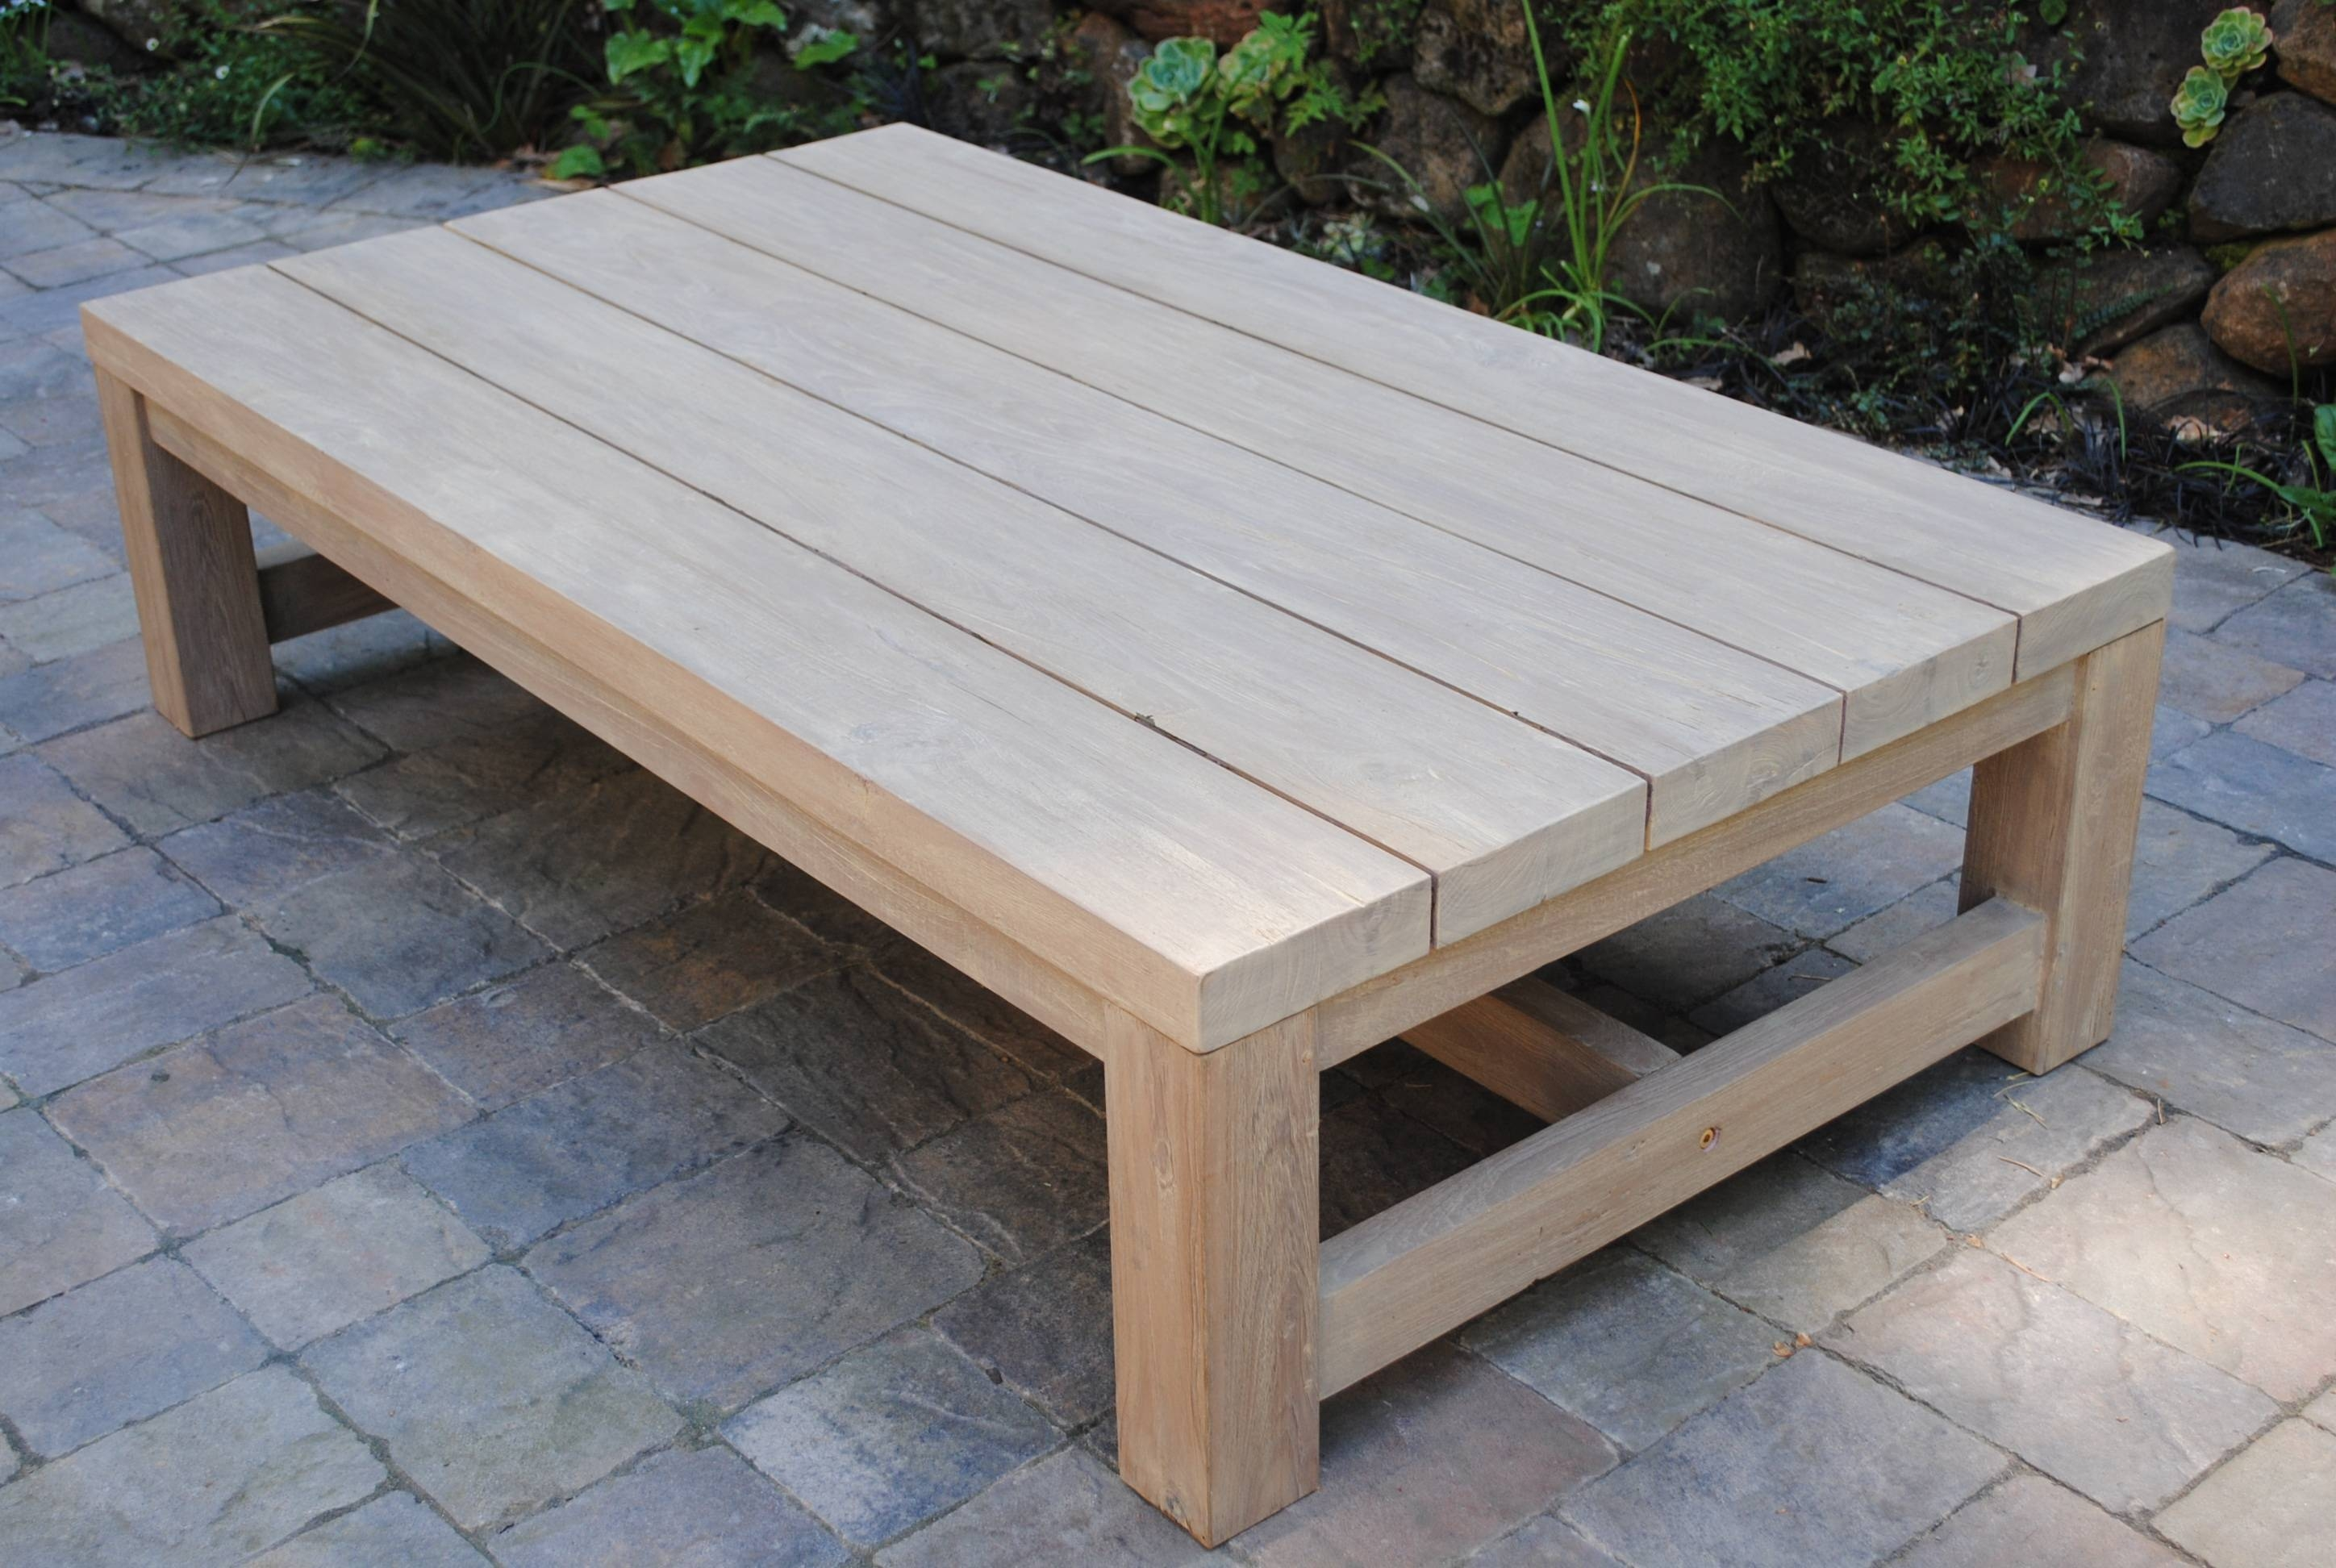 Low Outdoor Coffee Table 2lk2 – Cnxconsortium | Outdoor Furniture Throughout Large Low Wooden Coffee Tables (View 17 of 30)